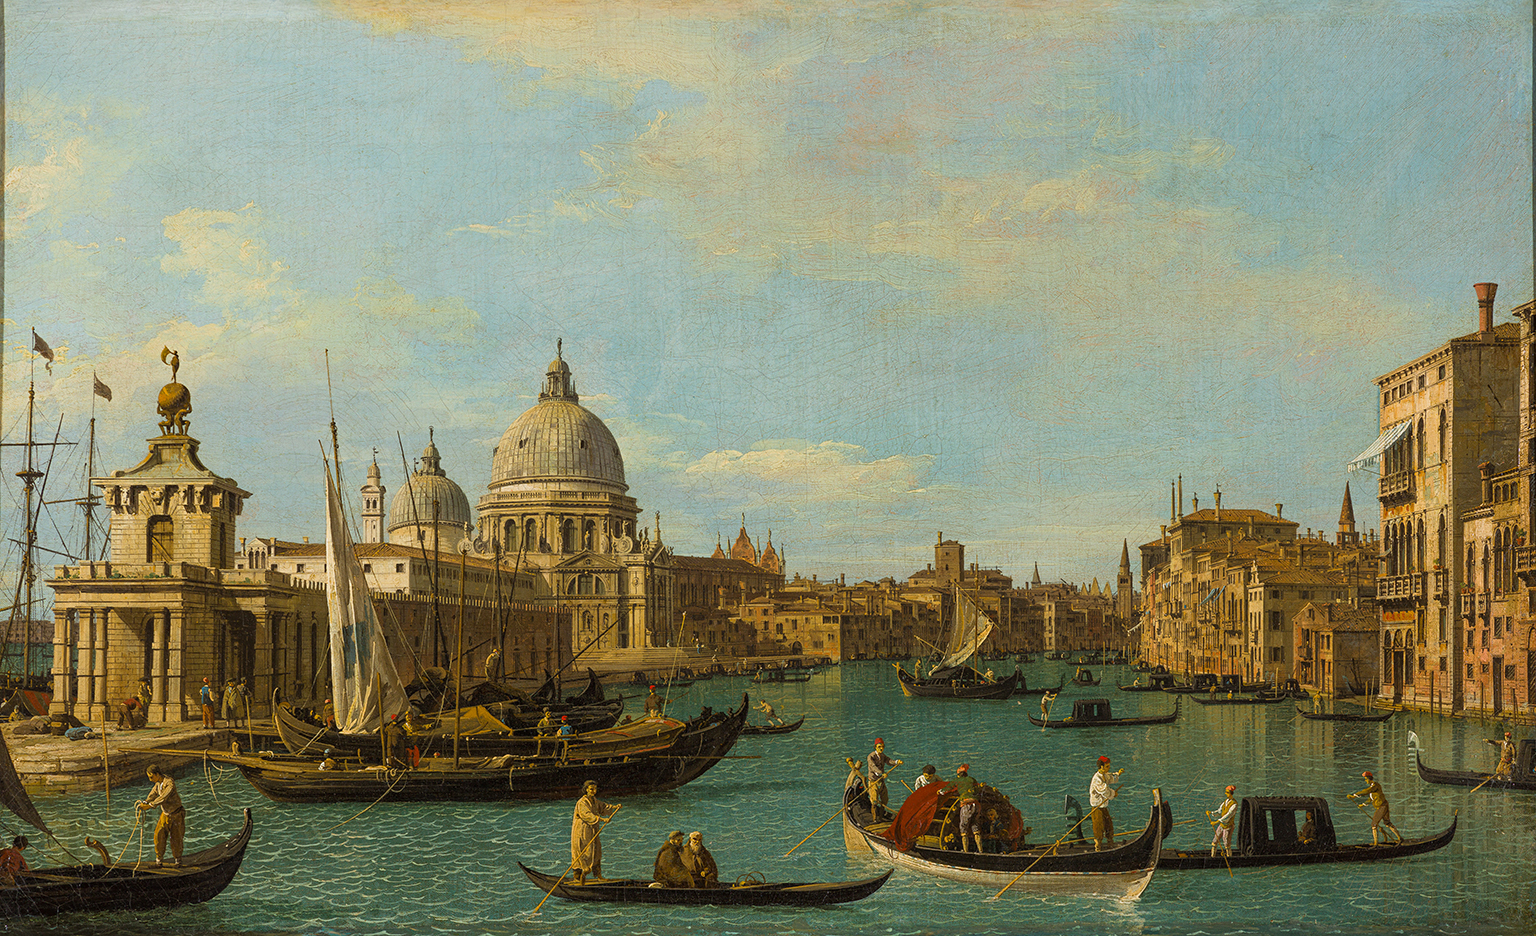 The Entrance to the Grand Canal, with the Dogana and the Church of Santa Maria della Salute, Oil on canvas, 1731-1736